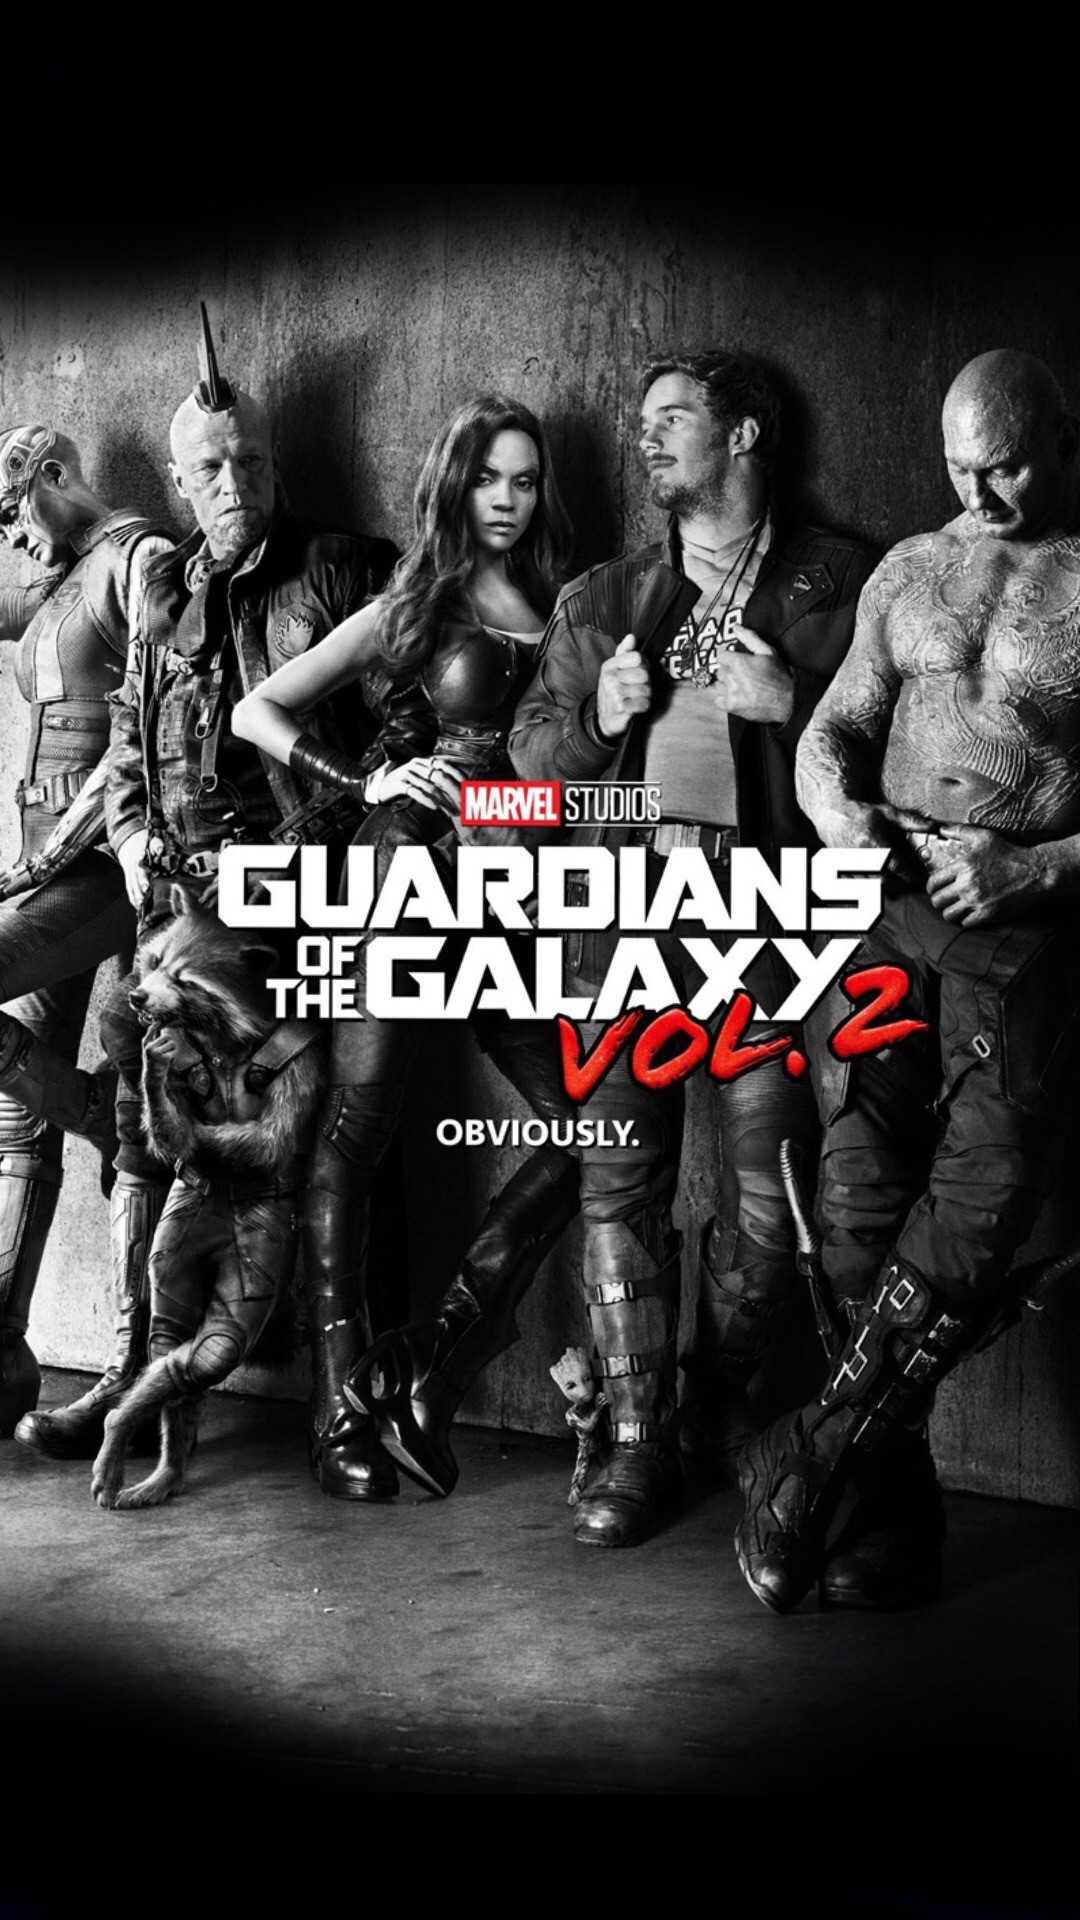 Download Iphone Guardians Of The Galaxy Vol 2 Black 1676405